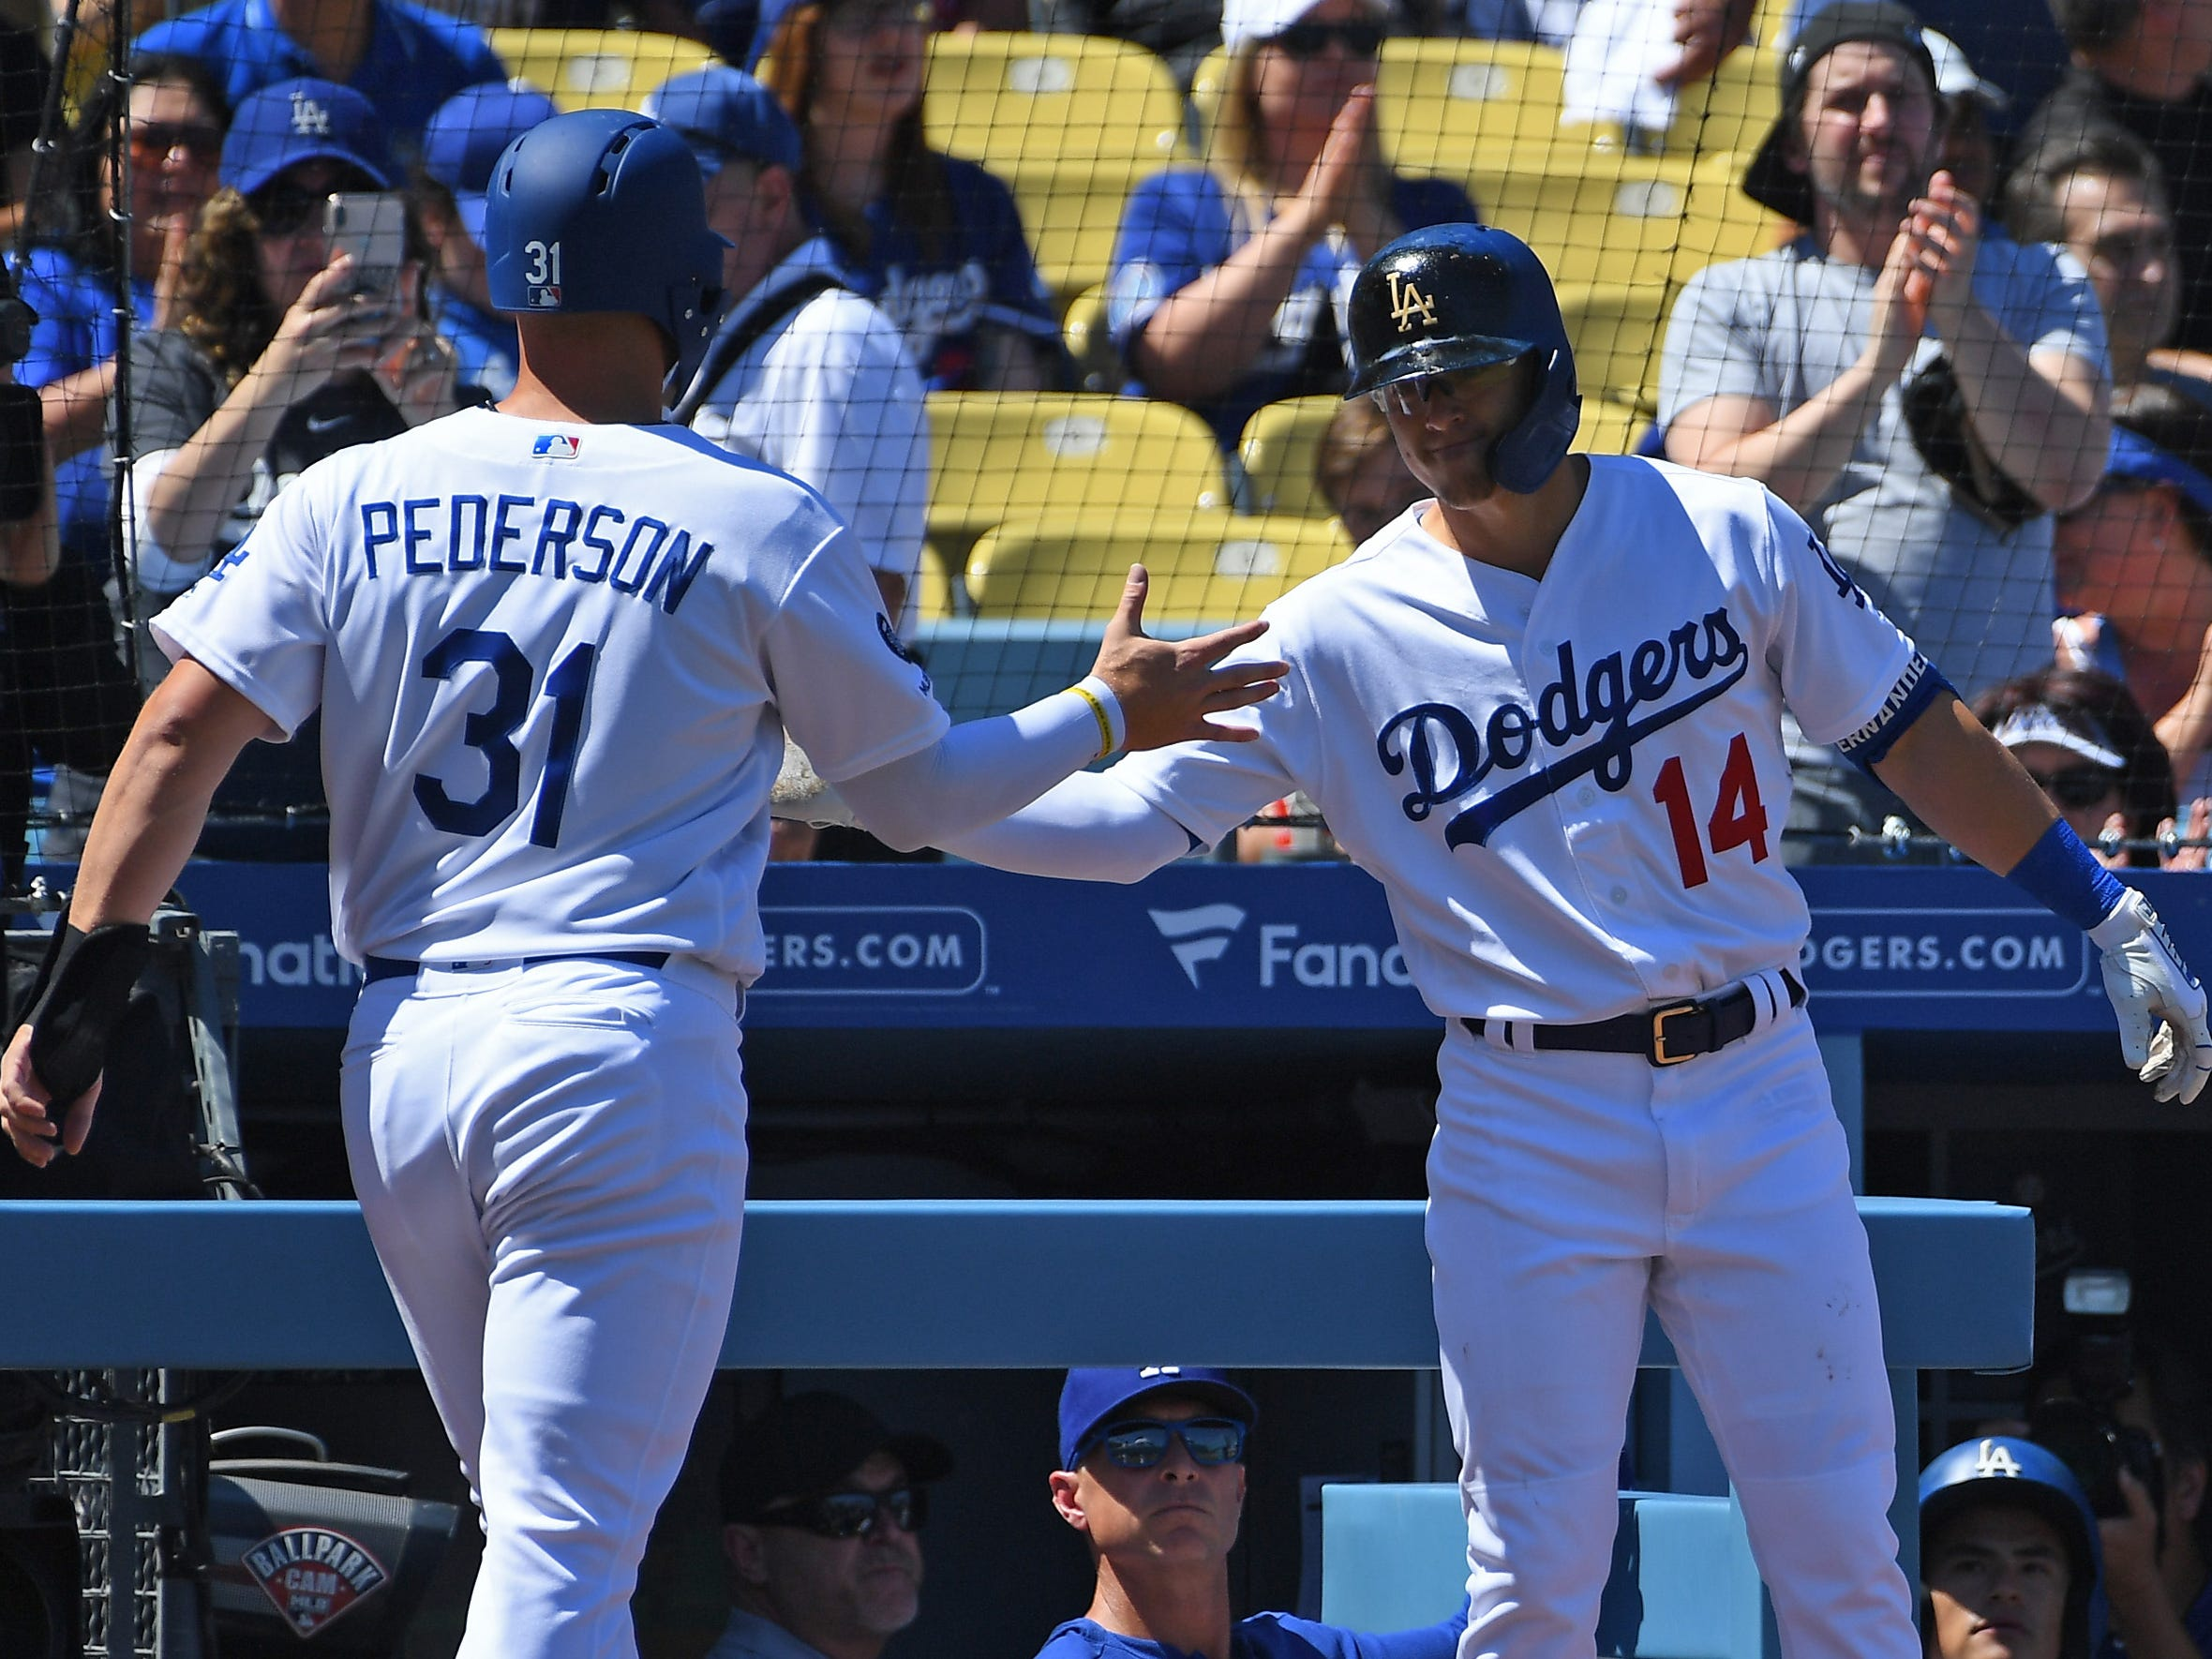 Mar 31, 2019; Los Angeles, CA, USA; Los Angeles Dodgers left fielder Joc Pederson (31) shakes hands with center fielder Enrique Hernandez (14) after scoring on a sacrifice fly in the first inning against the Arizona Diamondbacks at Dodger Stadium.